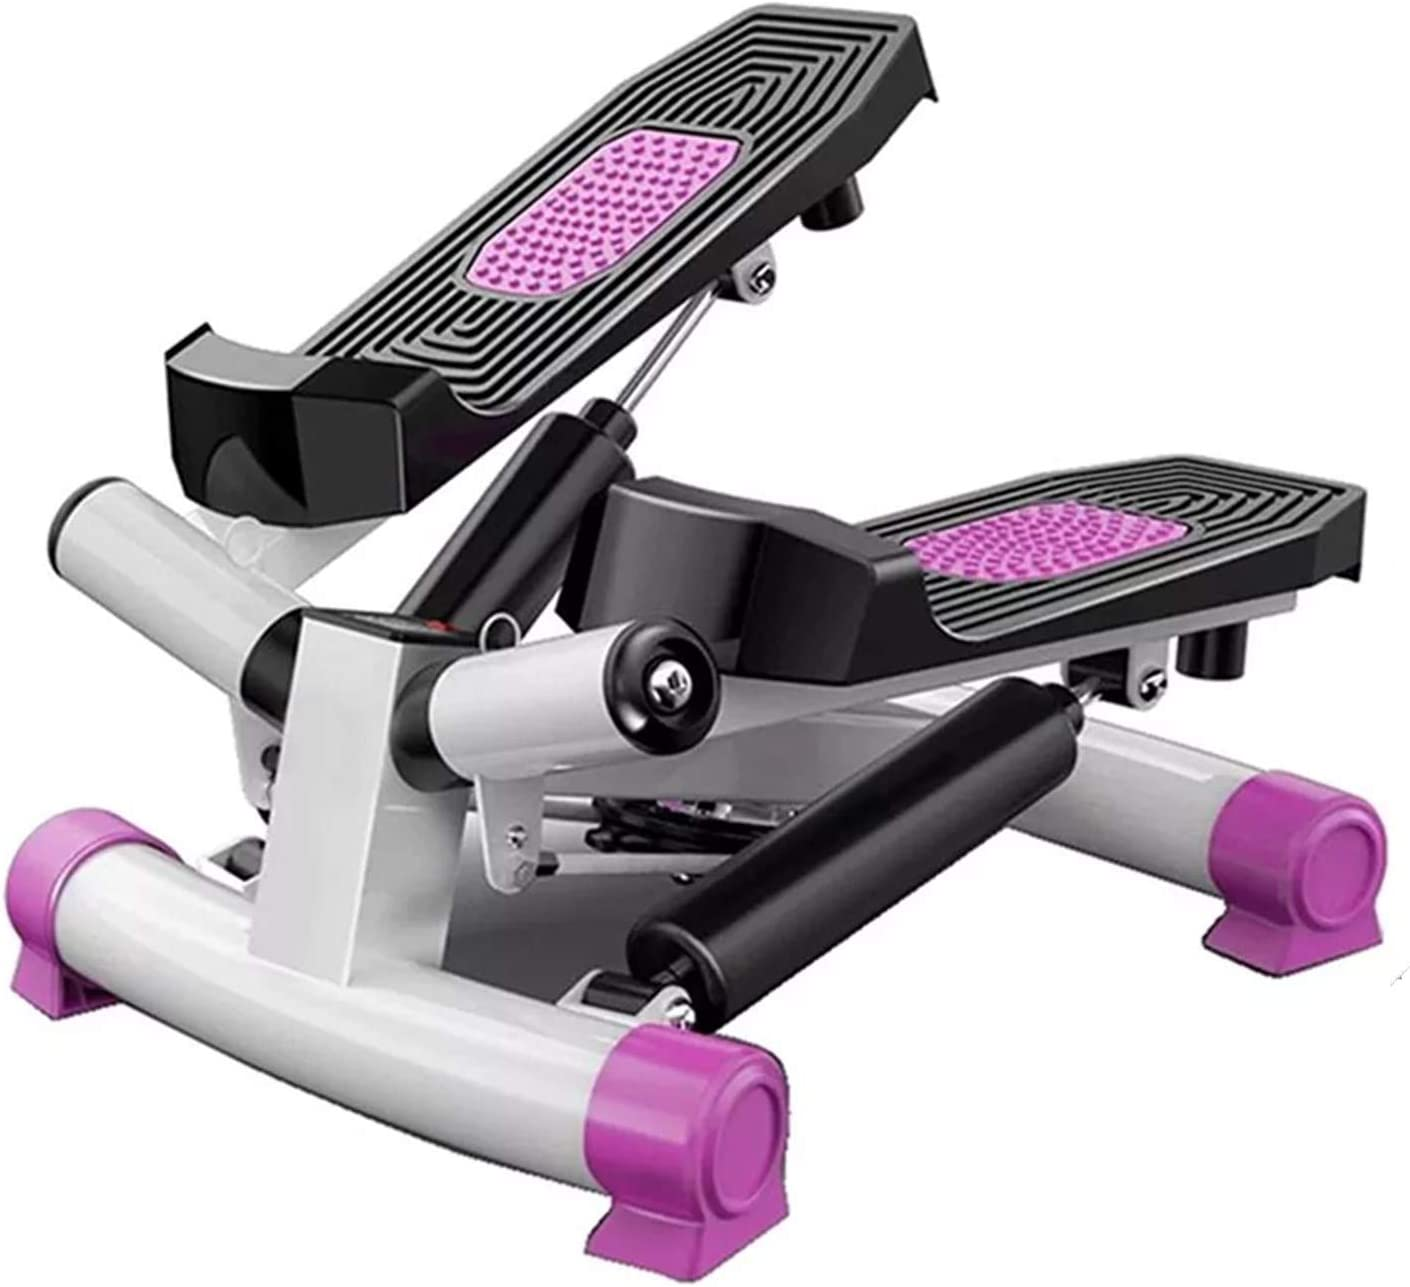 JINGOU Mini Stair Stepper Step Machine for Exercise with Resistance Bands, Twist Stepper for Exercise with LED Monitor, Fitness Step Equipment for Home Workouts, Up to 250 lbs Capacity (Purple)